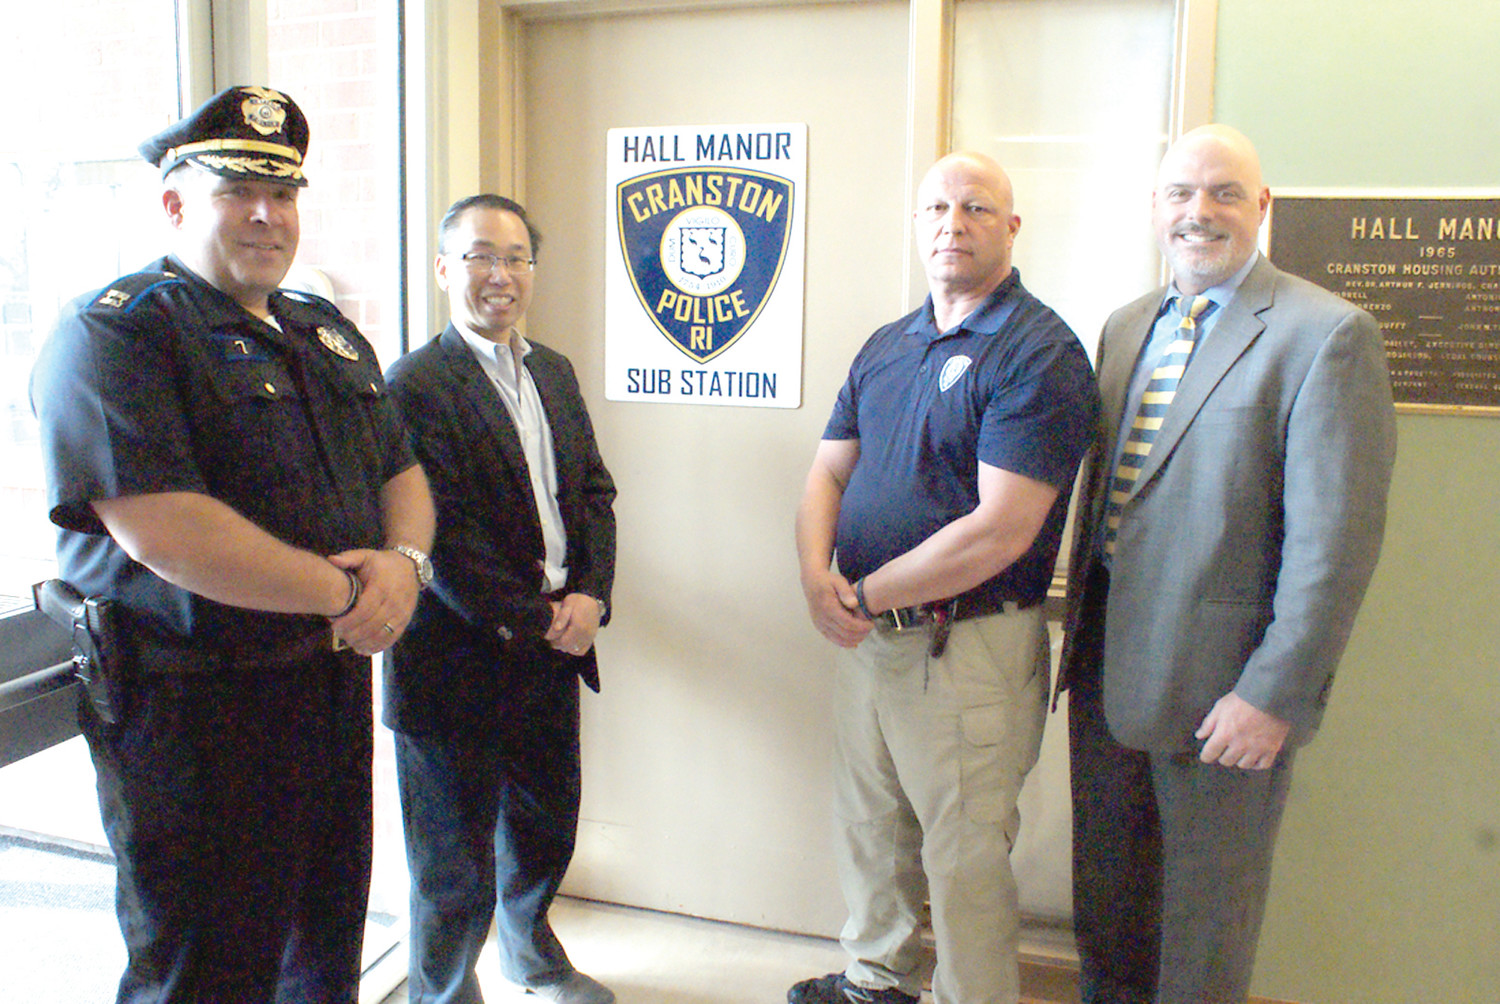 WELCOMING A NEW SUBSTATION:  The Cranston Police department in coordination with the Cranston Housing Authority have converted a former reading room at the Hall Manor on Warwick Ave. into a Police Substation. Standing in front of the new Substation Door are Capt. Vincent McAteer, Mayor Allen Fung, Patrol Sgt. Jeff Chapman and the Executive Director of the Cranston Housing Robert J. Coupe.